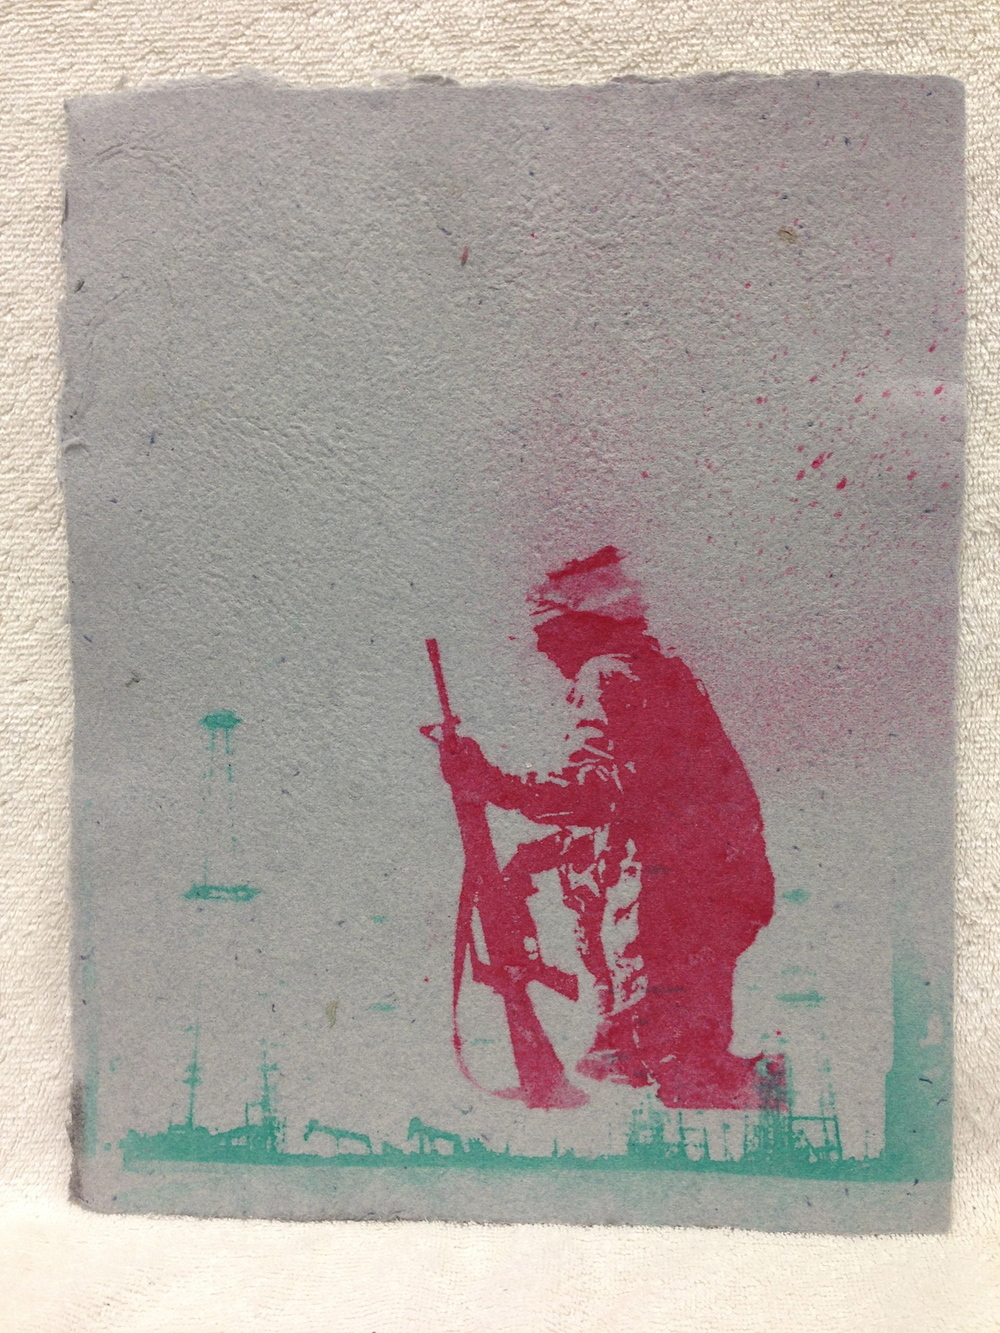 Anonymous _Untitled_ 2013 Pulp Spray on Handmade paper from military uniforms 11 x 14 IMG_0978.jpg